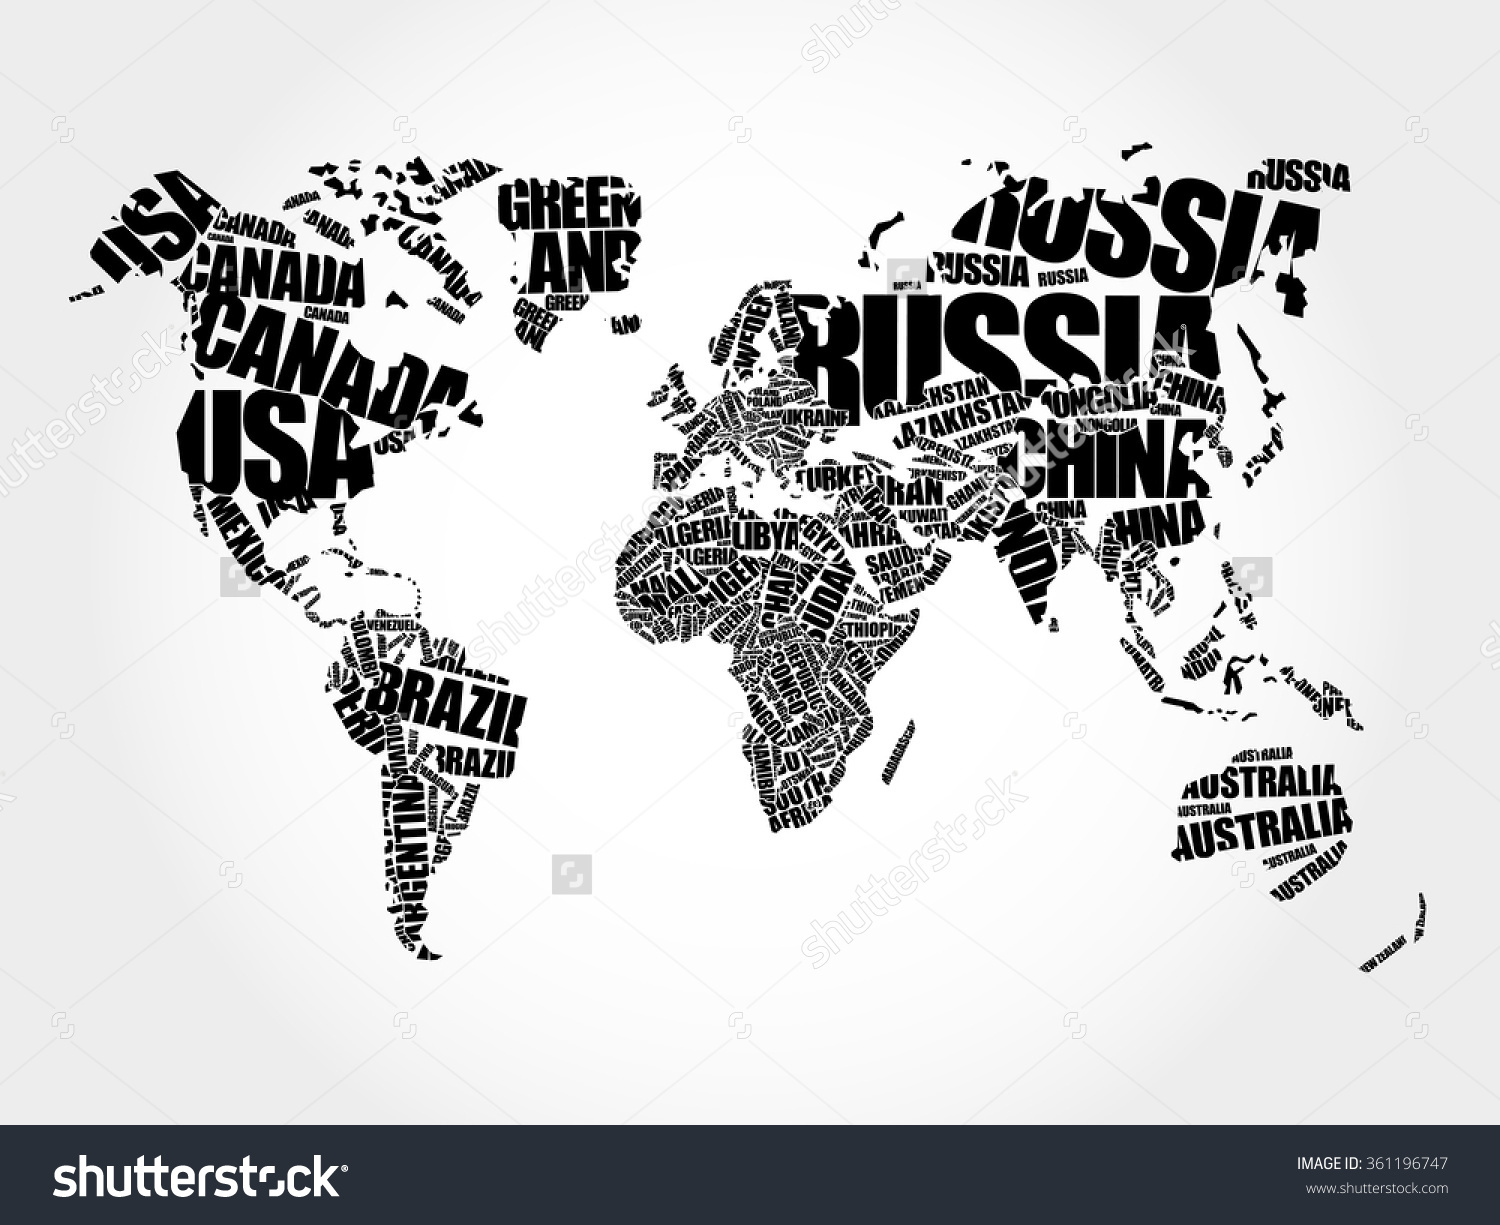 Country world map clipart jpg library download Country map clipart black and white - ClipartFest jpg library download